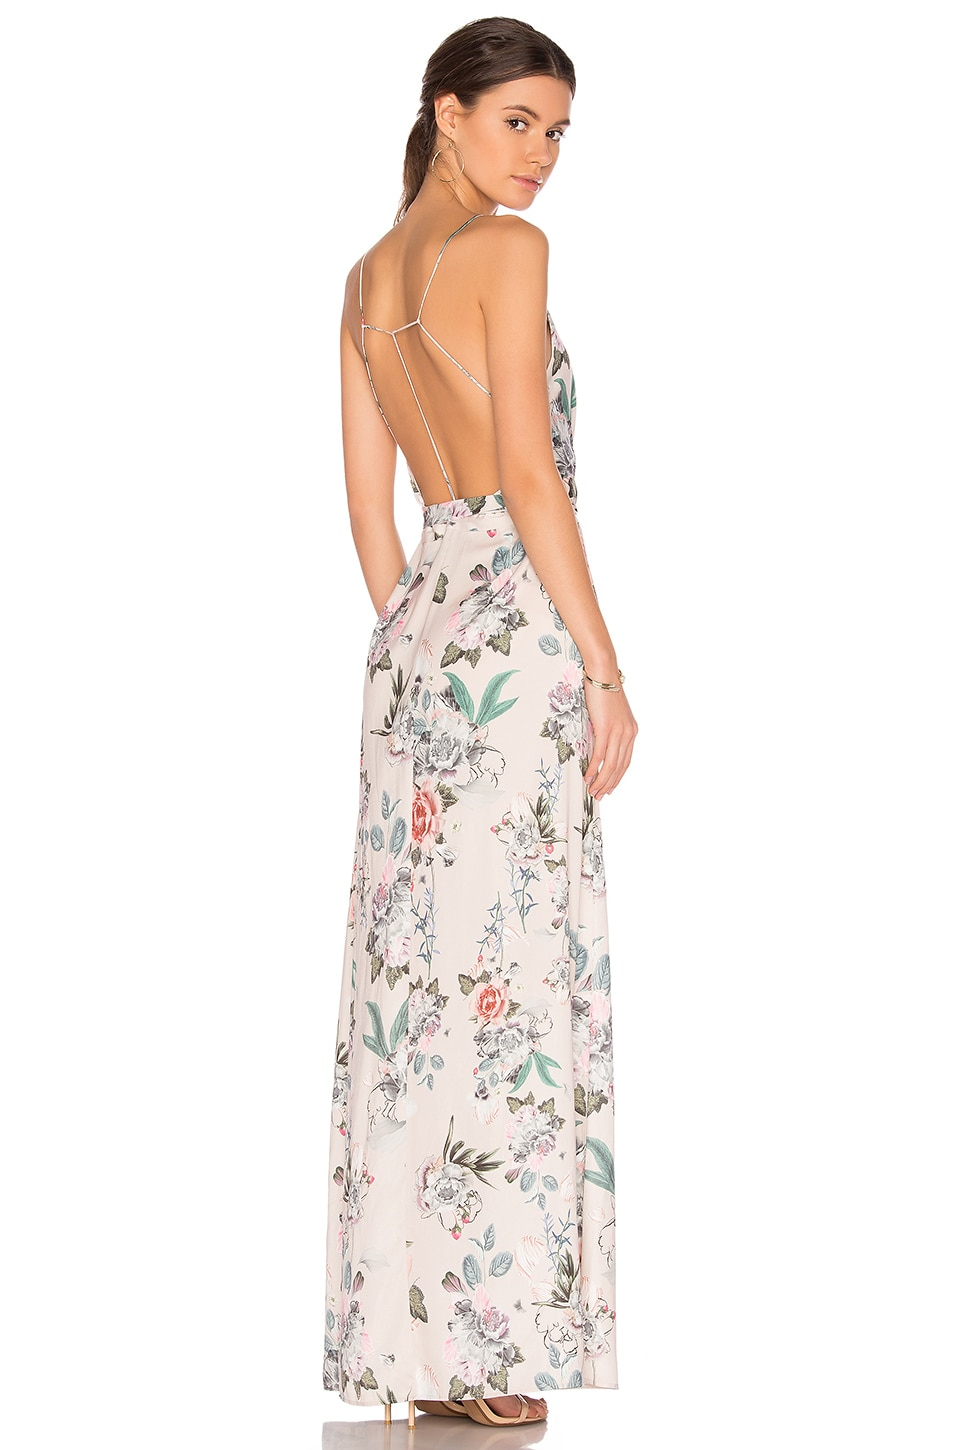 MAJORELLE Cubano Maxi Dress in Multi Flora